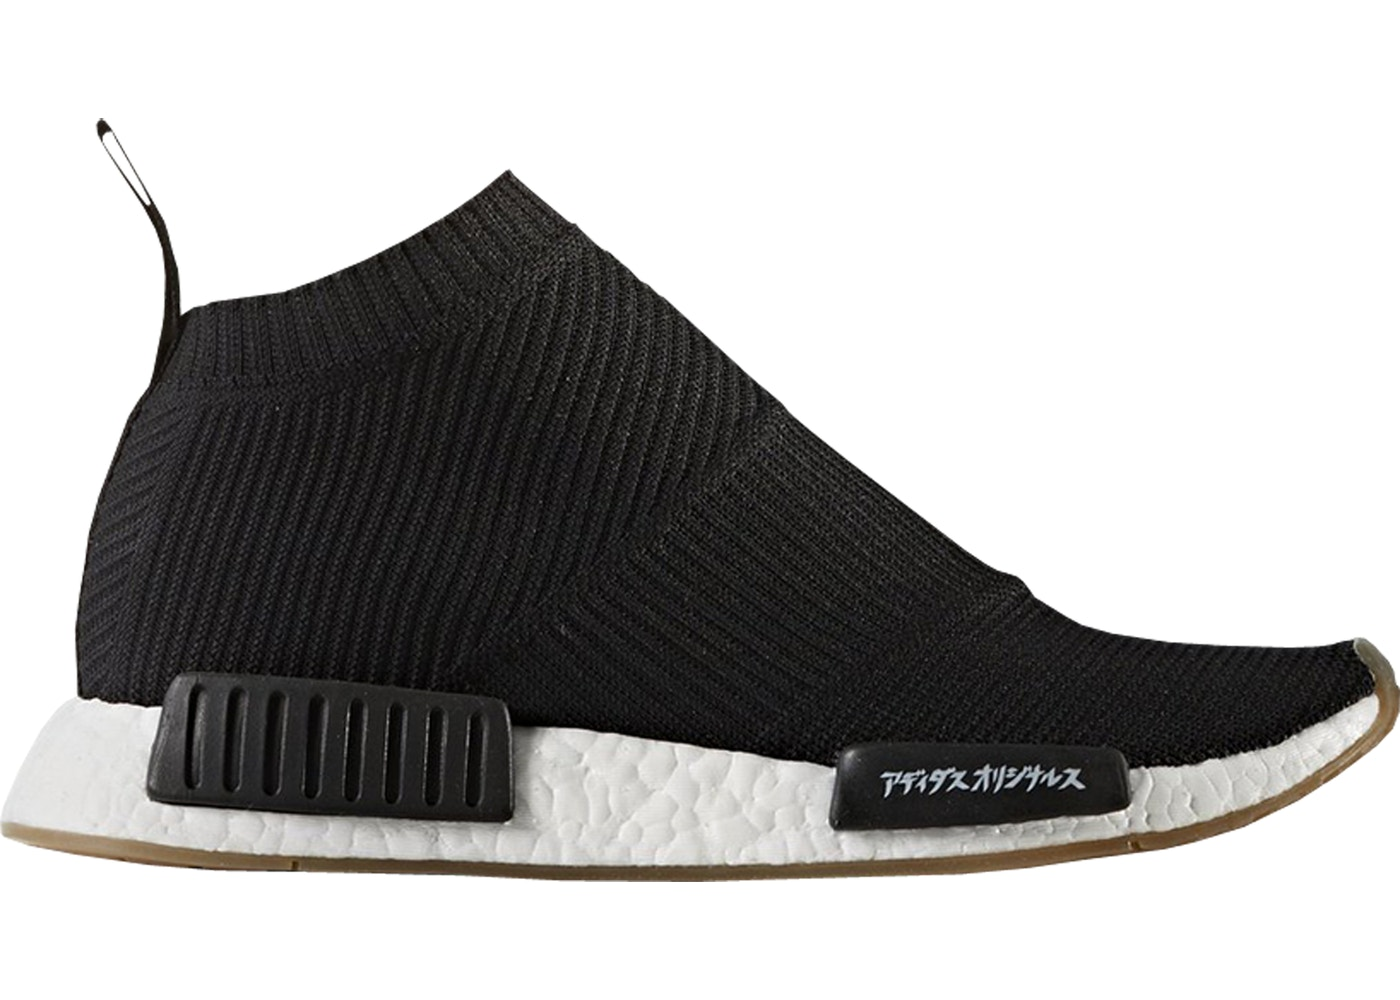 a59e9a9ed adidas NMD City Sock United Arrows MikiType - CG3604